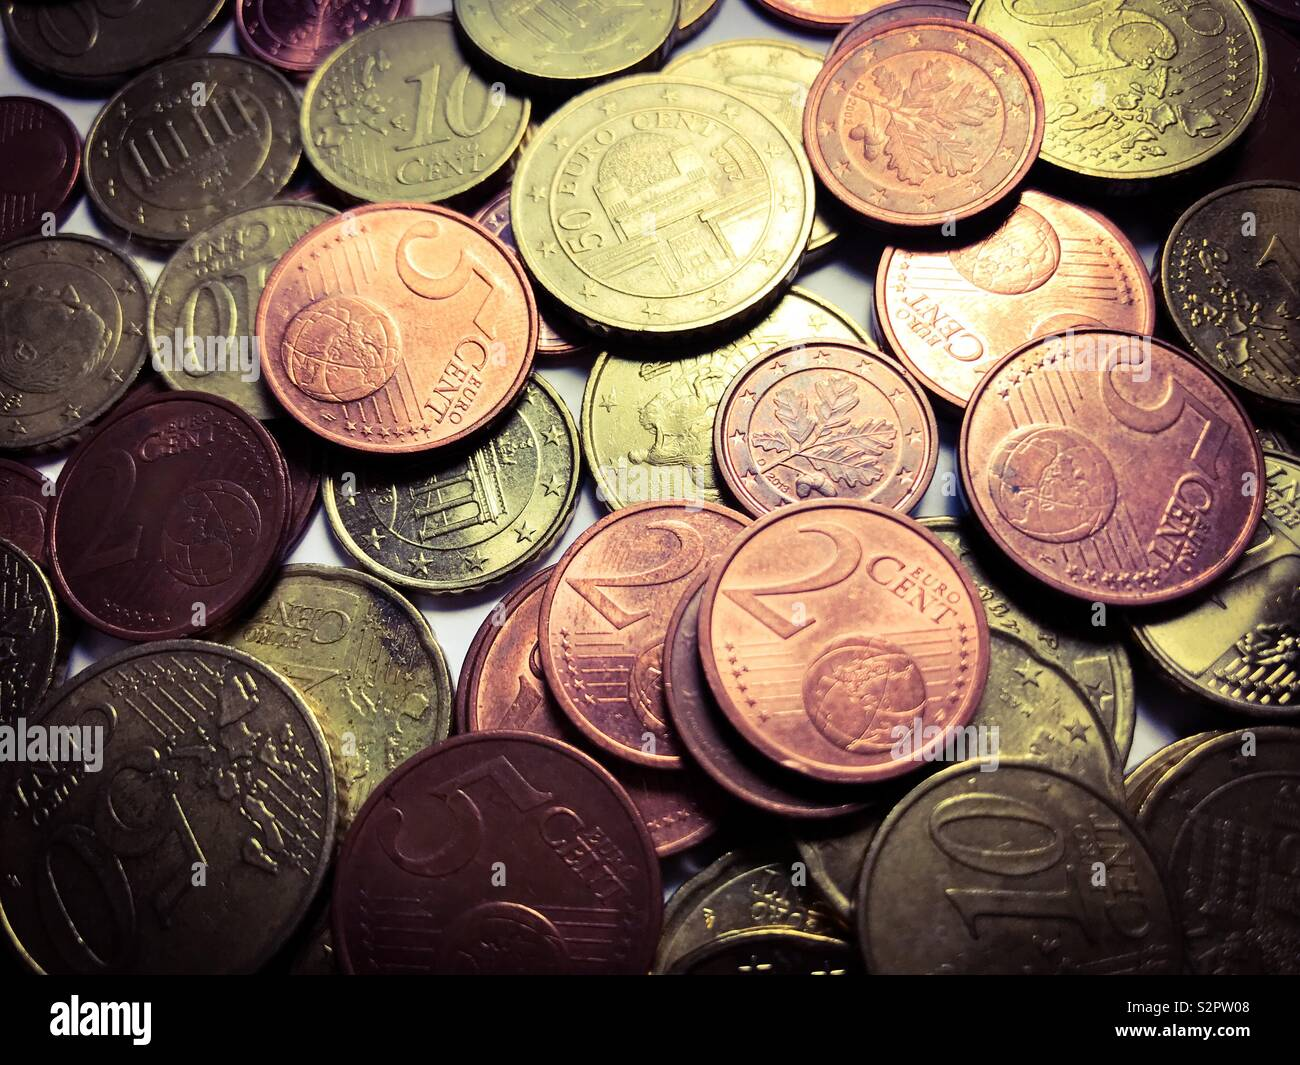 Big pile of mixed euro coins - Stock Image